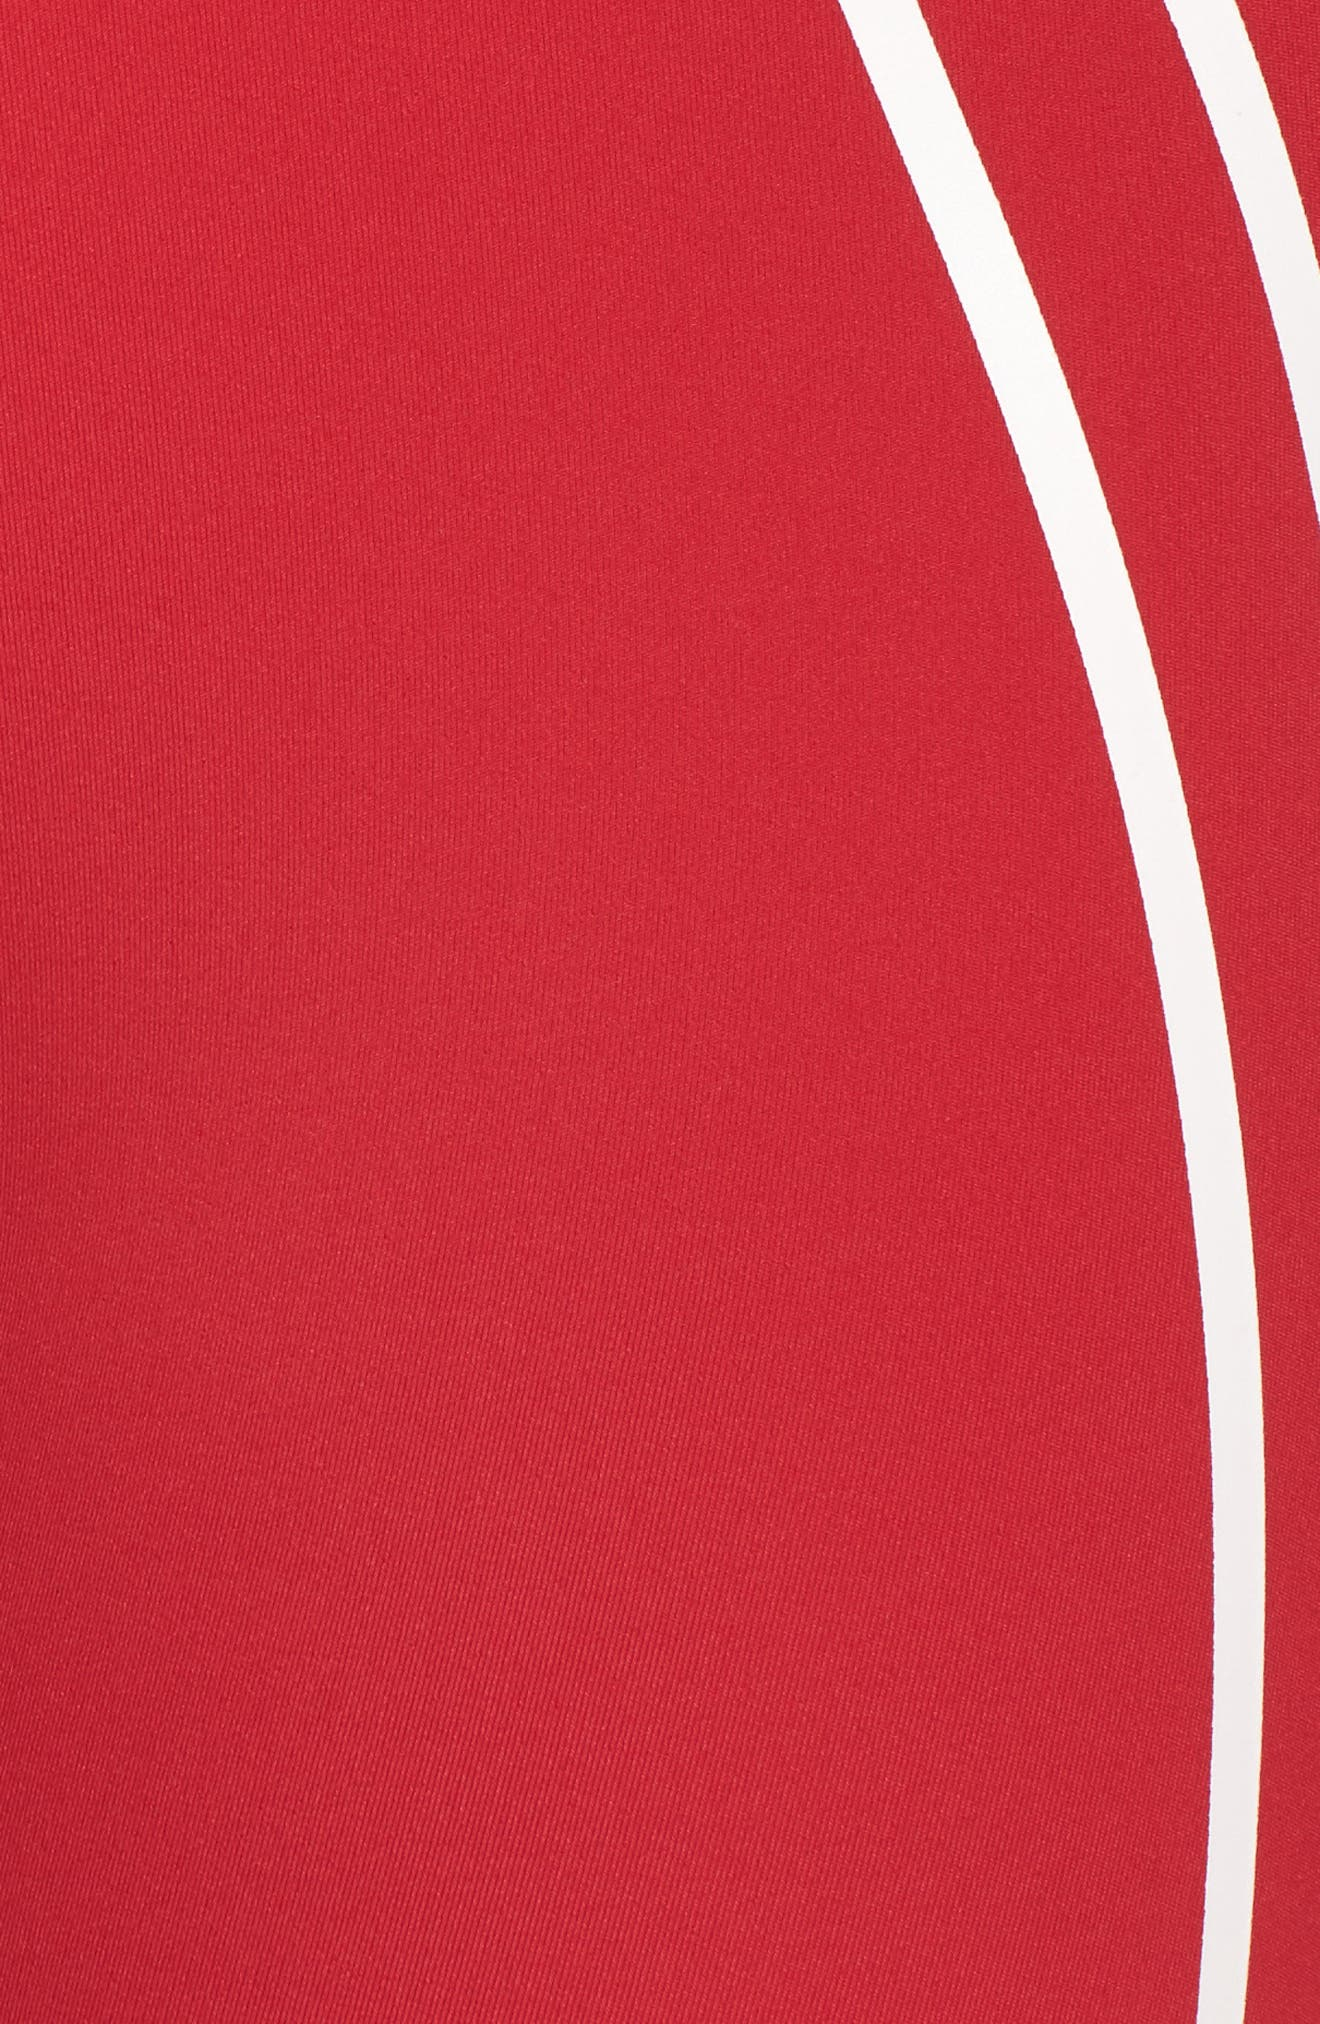 Distance Tights,                             Alternate thumbnail 6, color,                             Havana Red/ Off White